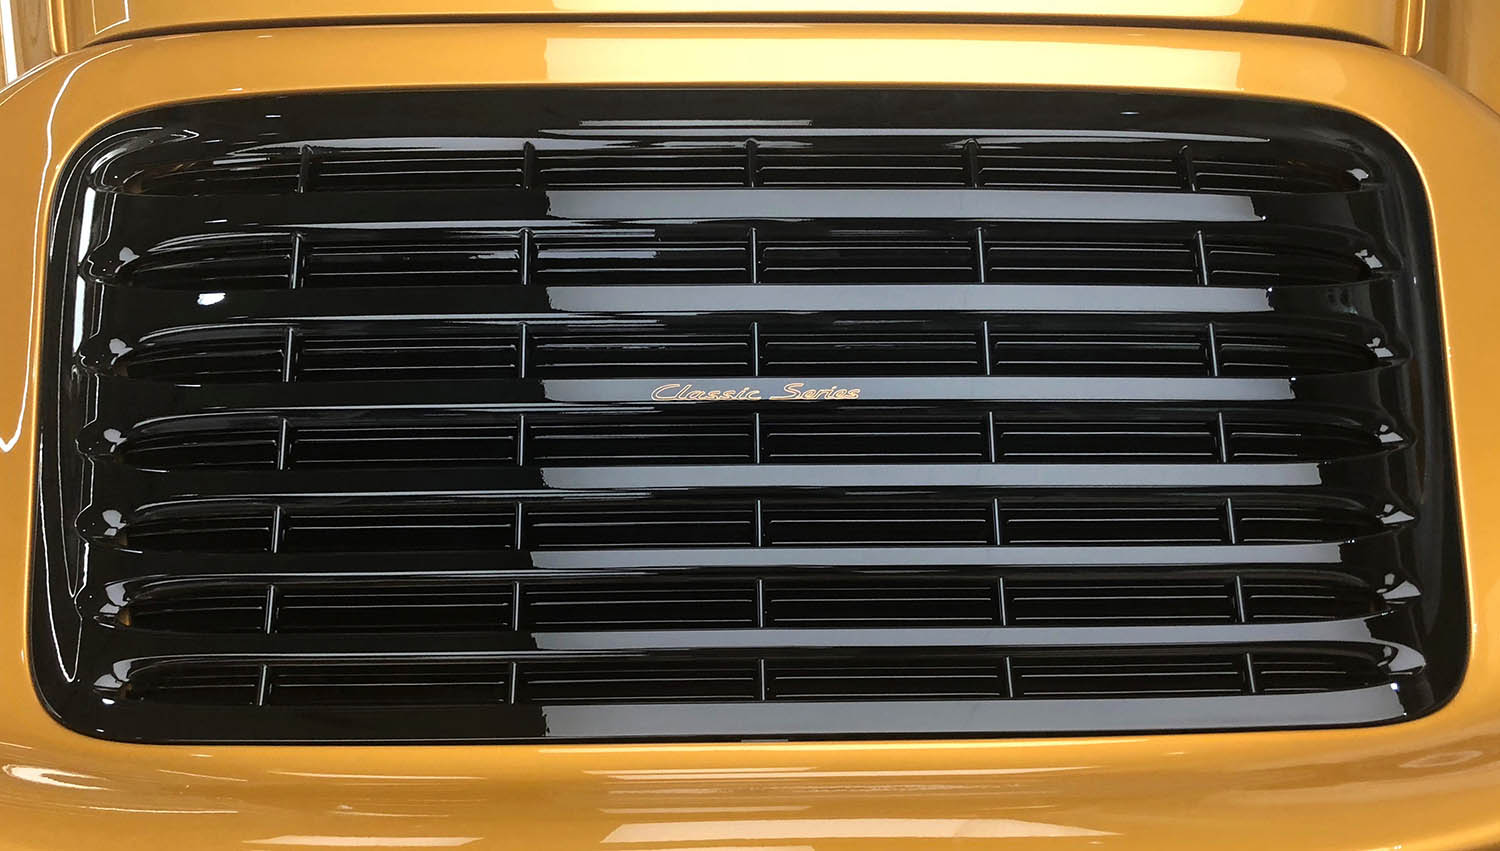 2018-Porsche-911-Turbo--Classic-Series-Project-Gold-_7.jpg